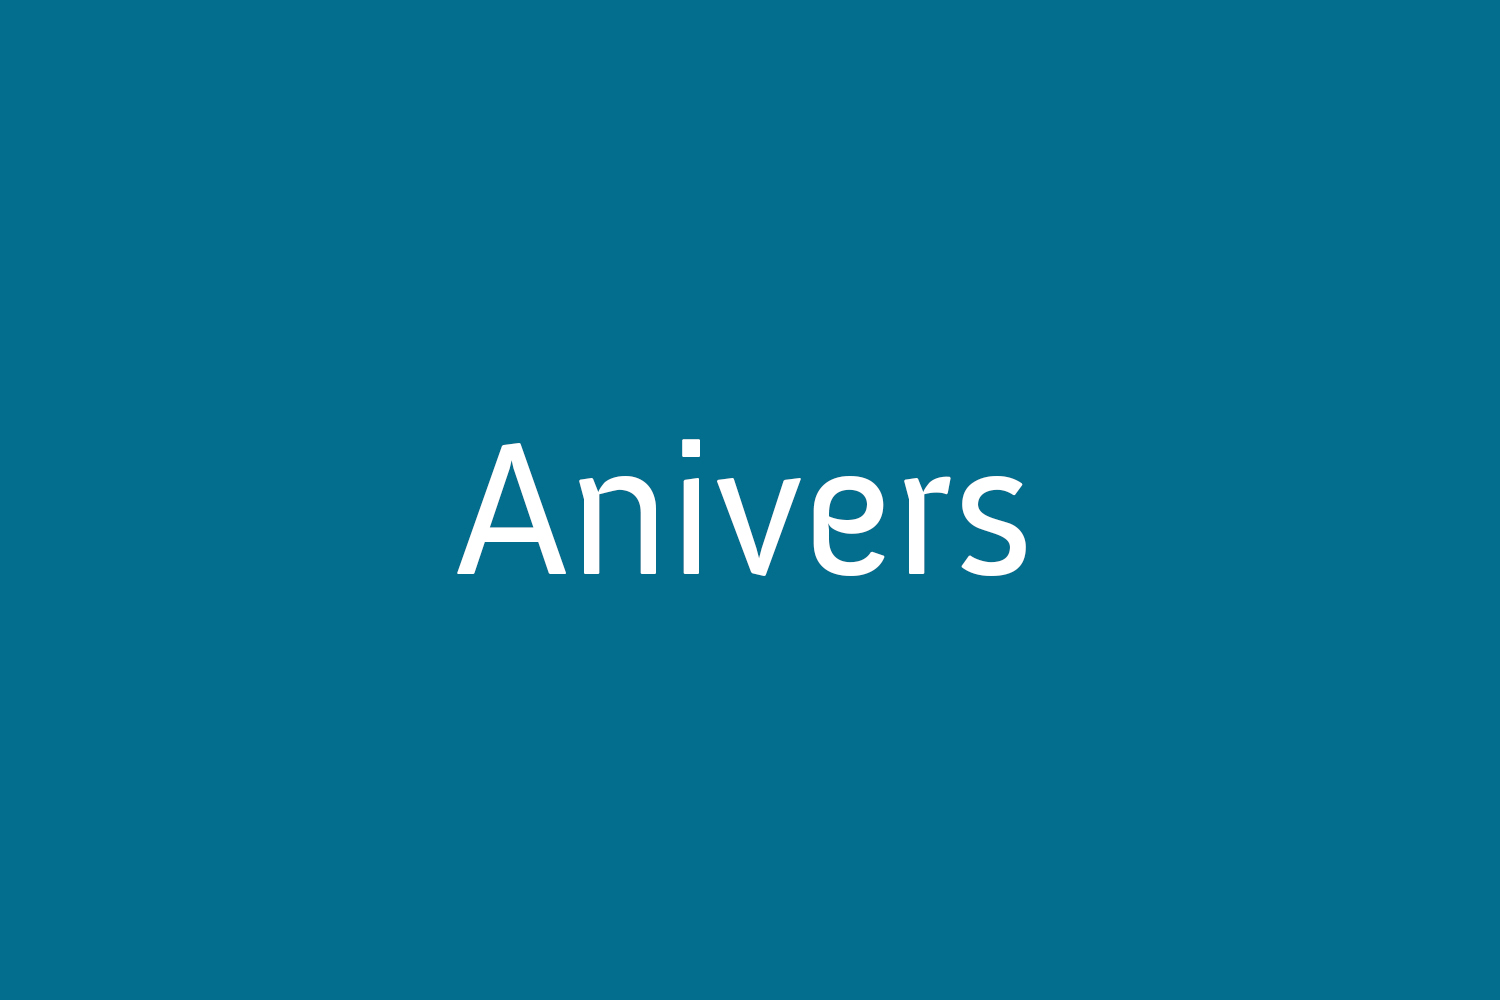 Anivers